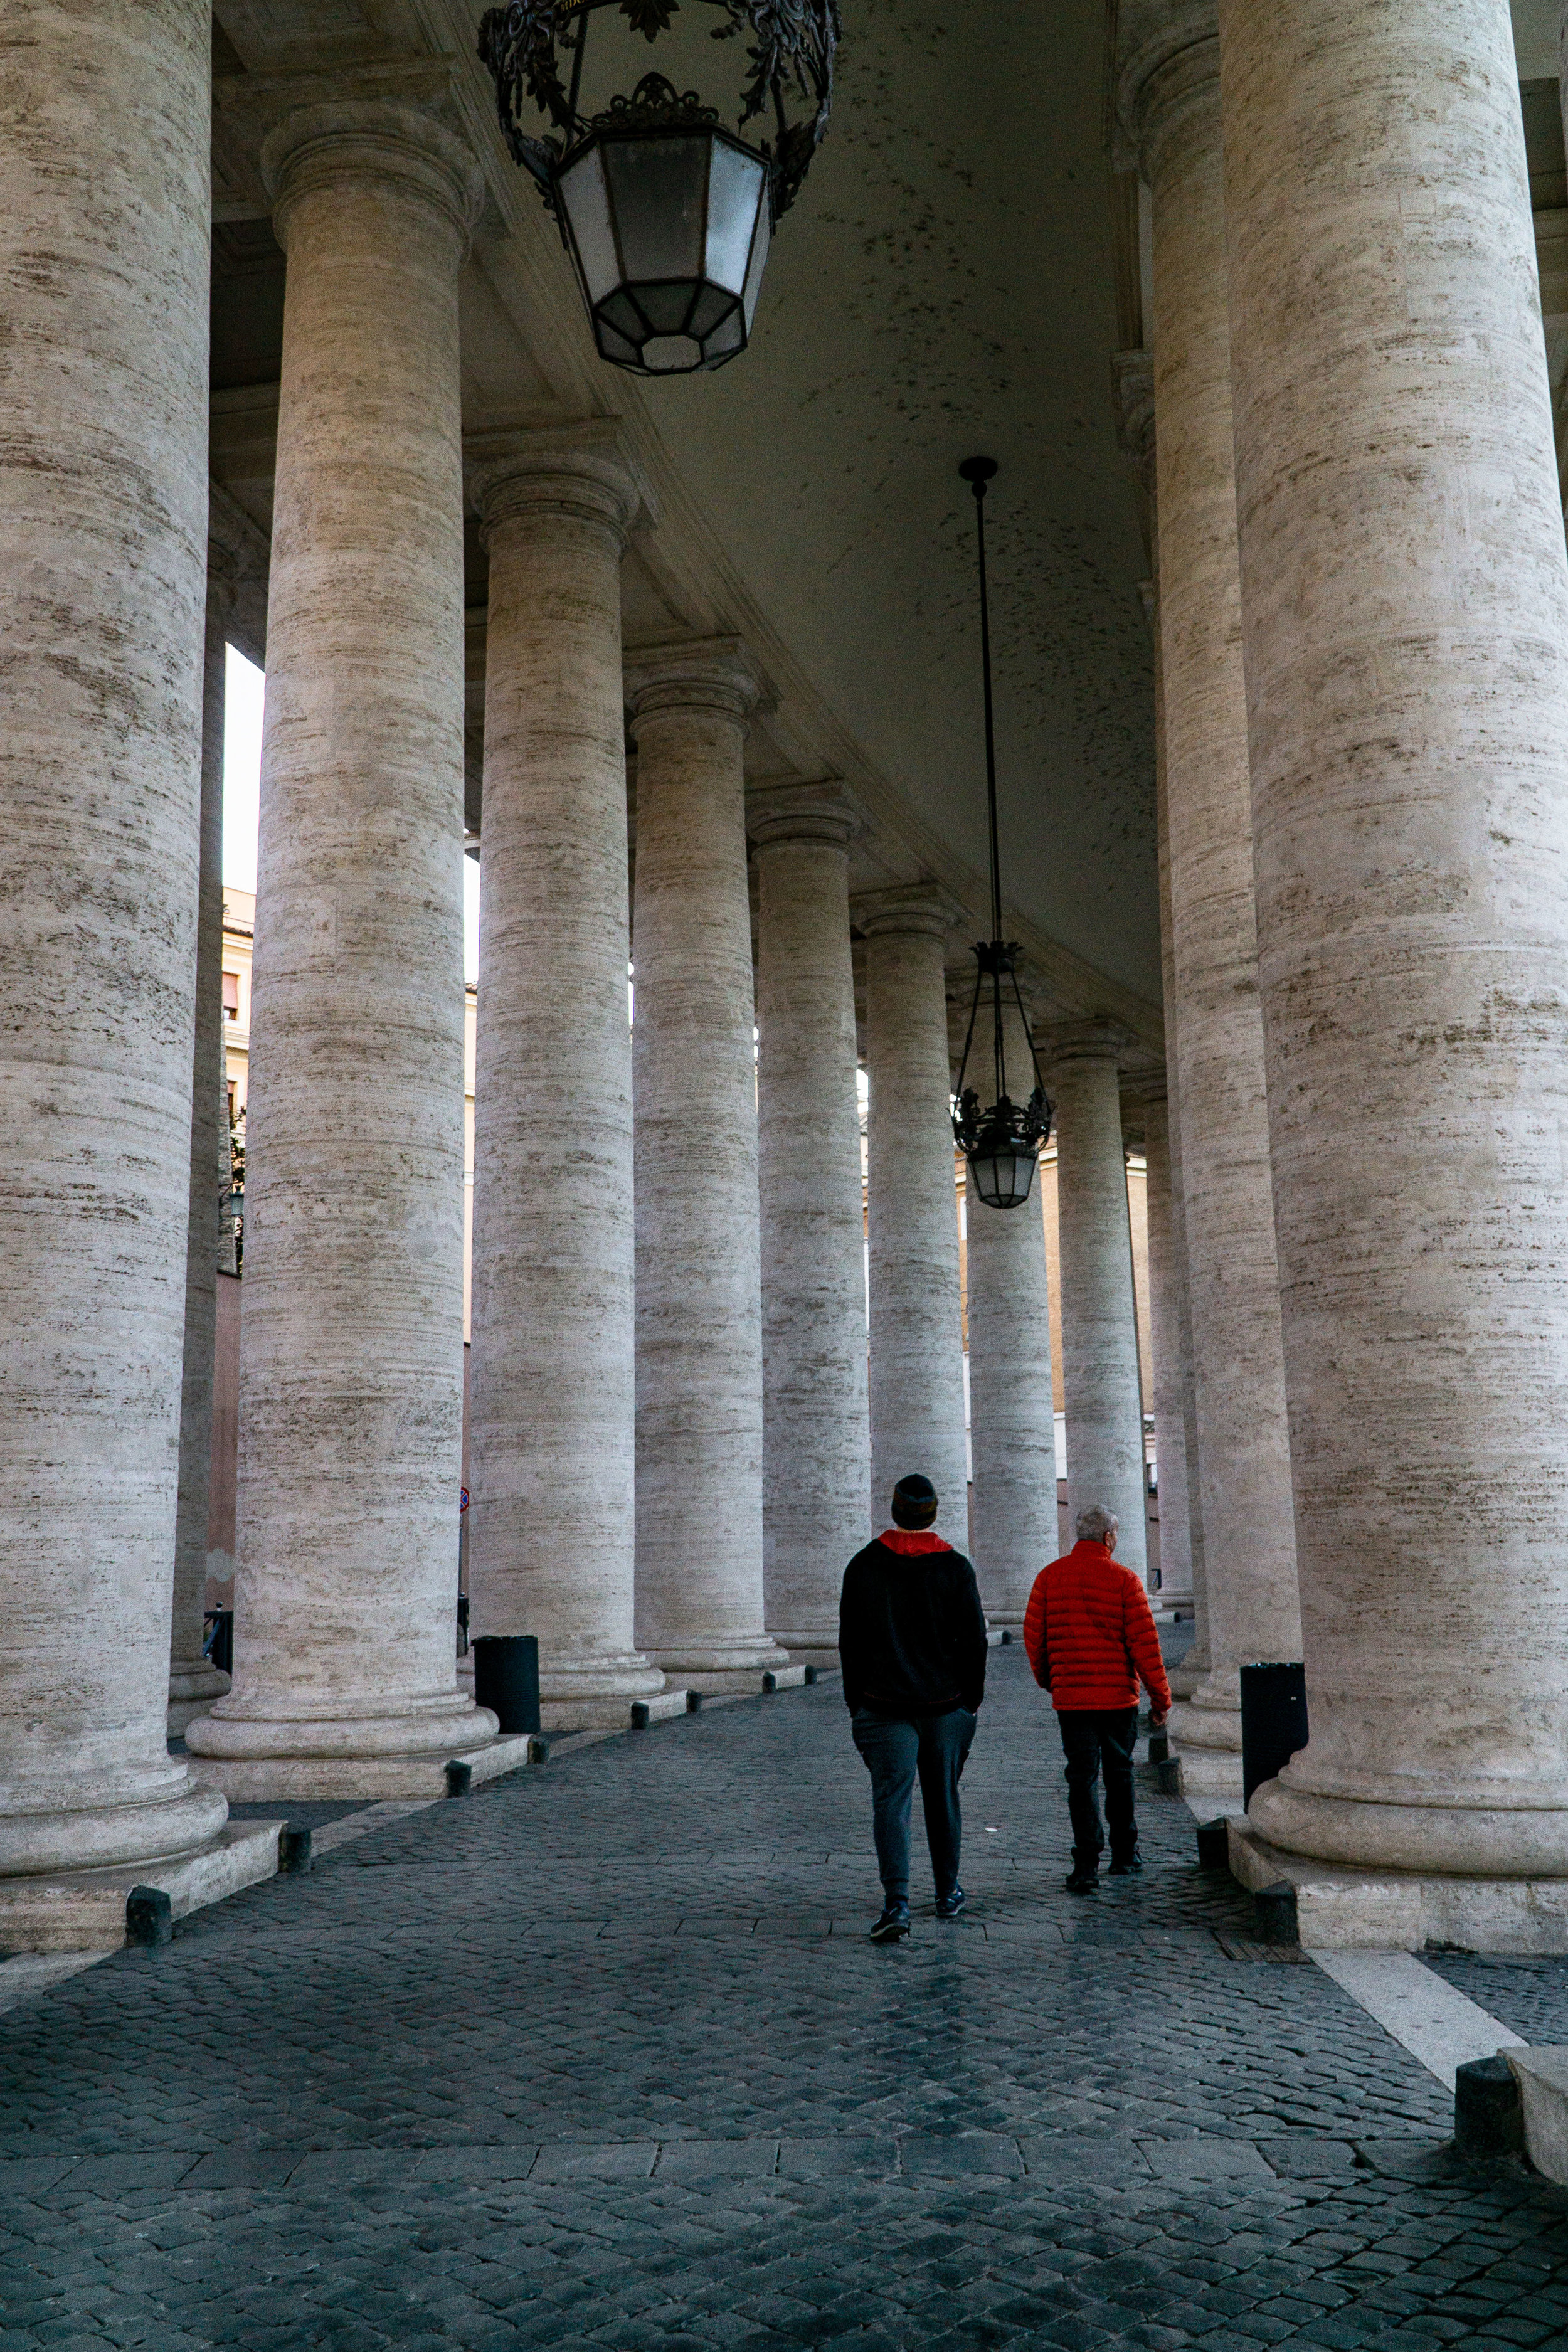 rome_st.peter_vickygood_travel_photography11.jpg